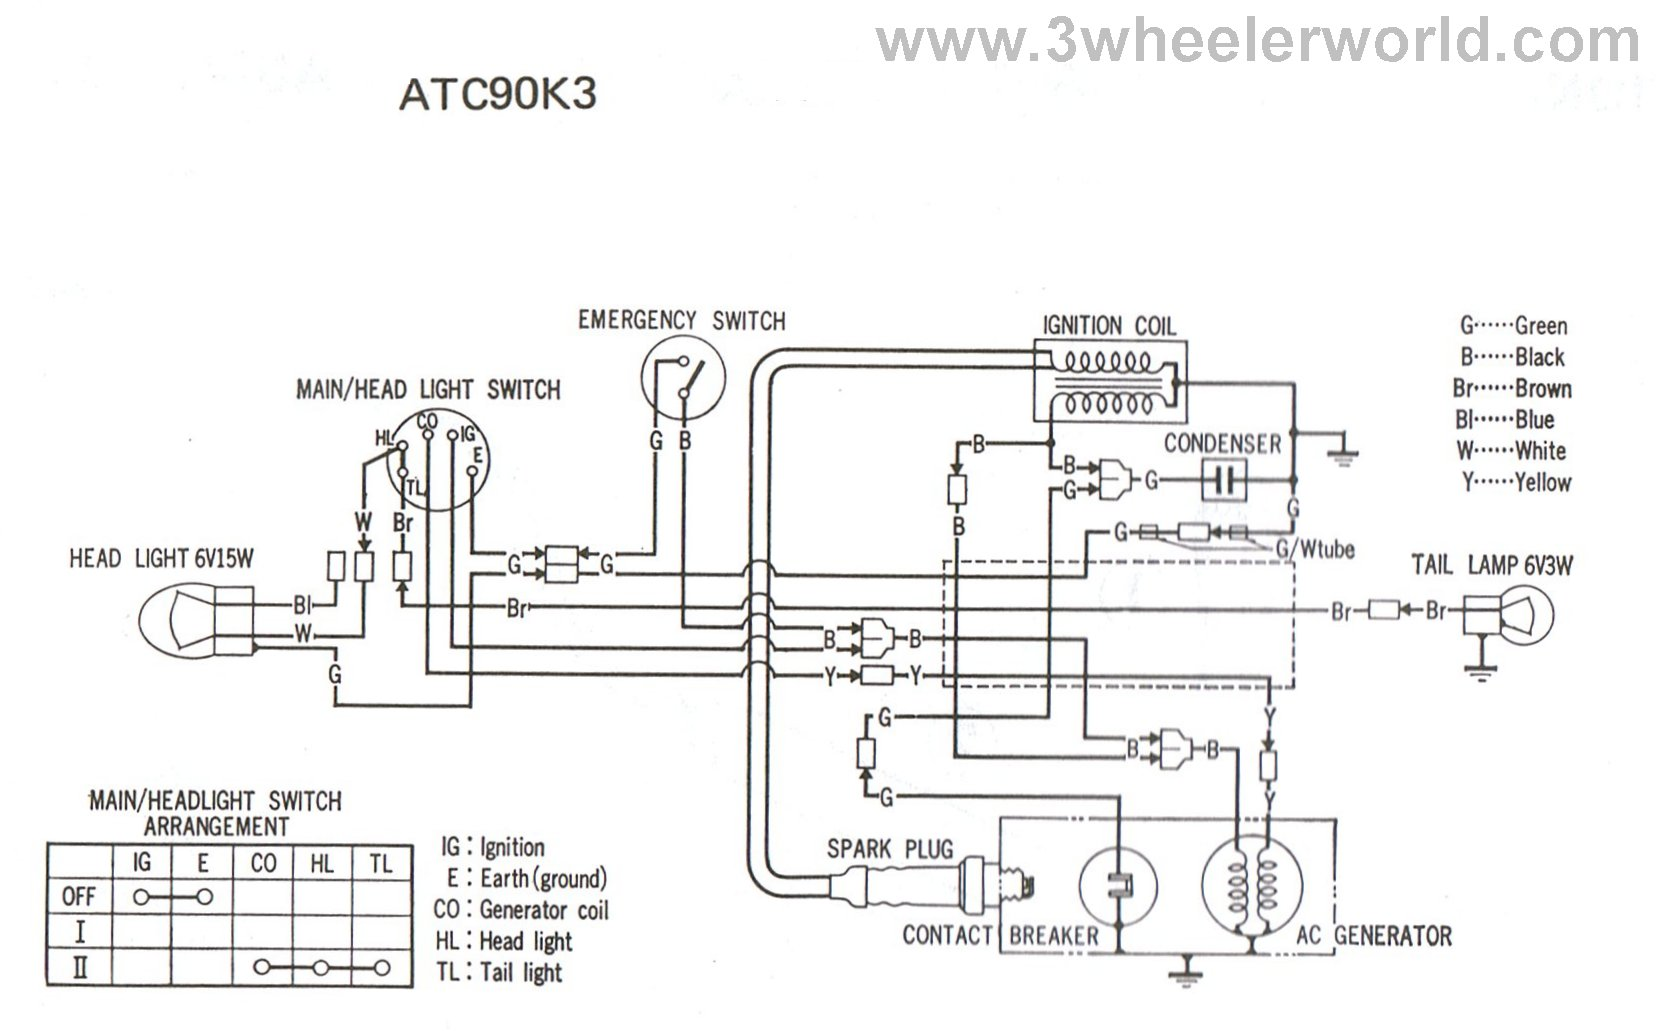 3 wheeler world tech help honda wiring diagrams rh 3wheelerworld com 1978  Honda Goldwing Wiring-